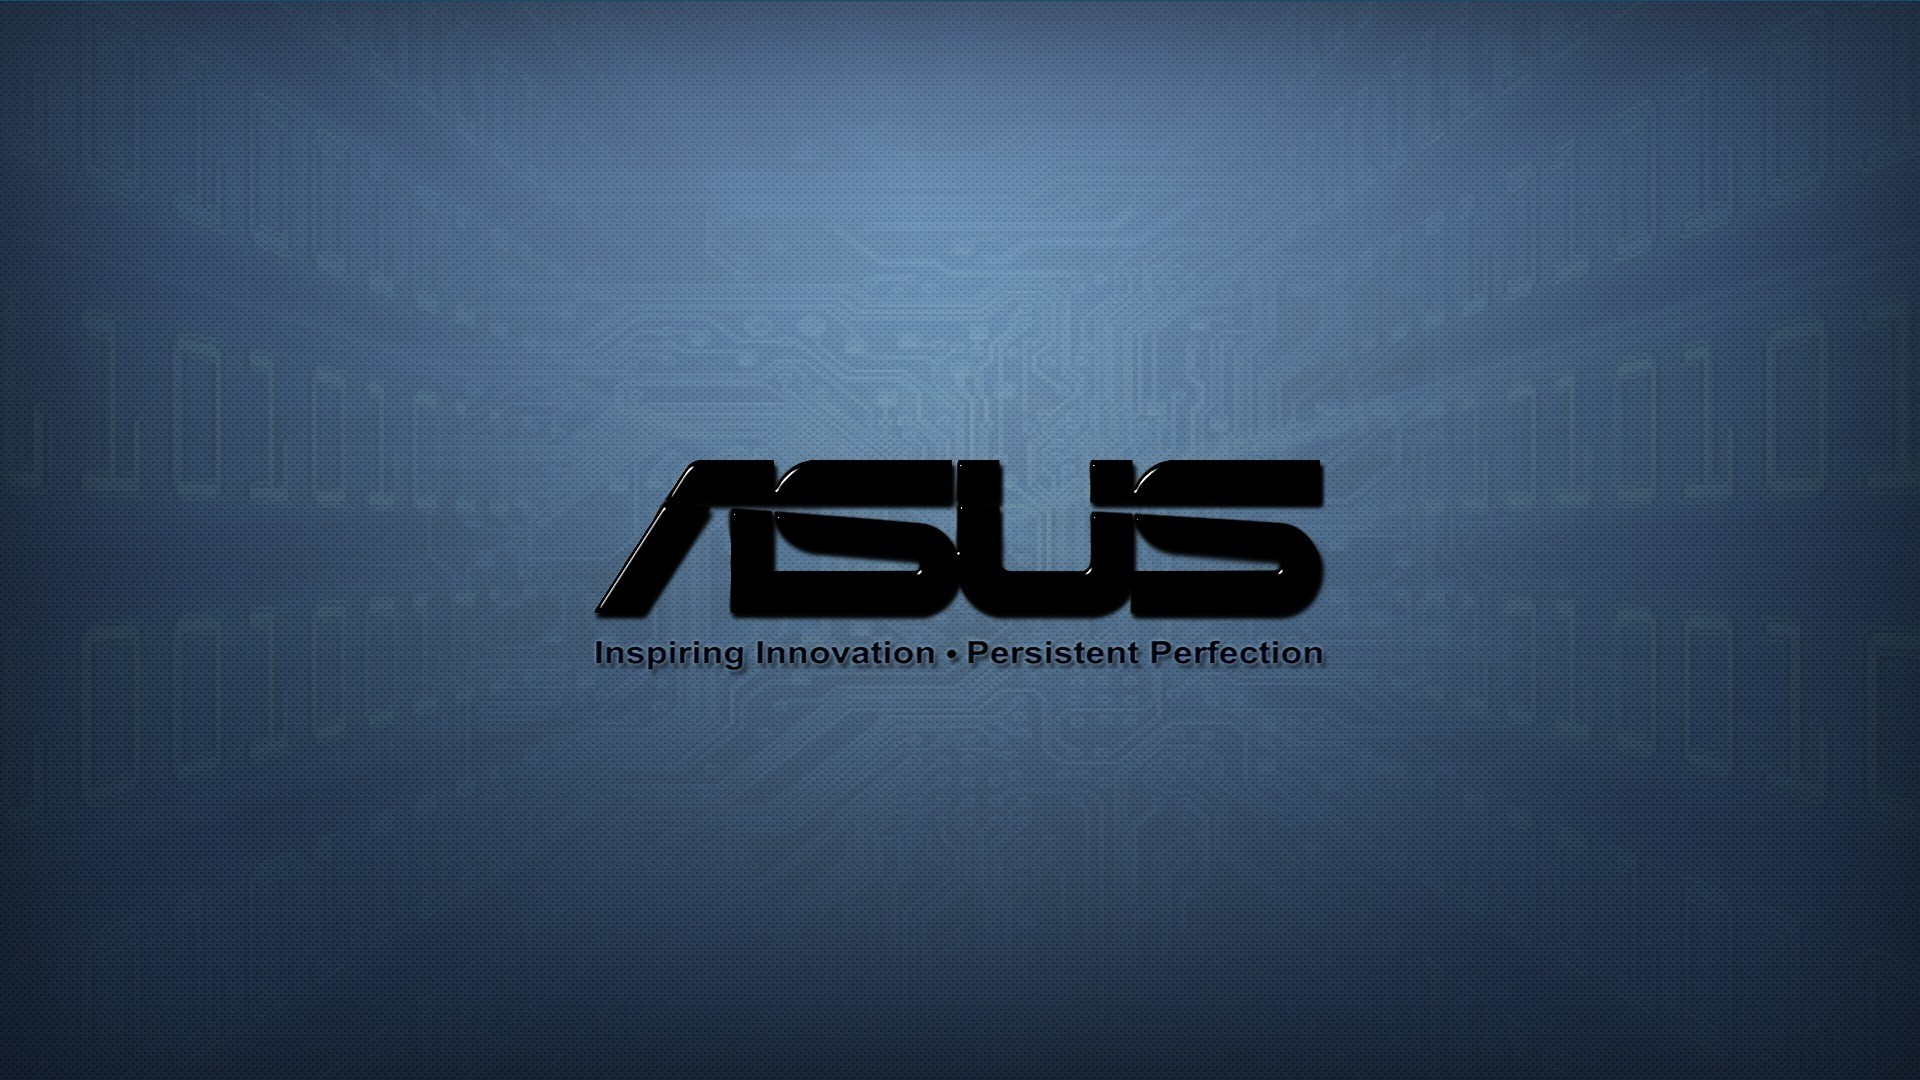 Asus Wallpaper theme